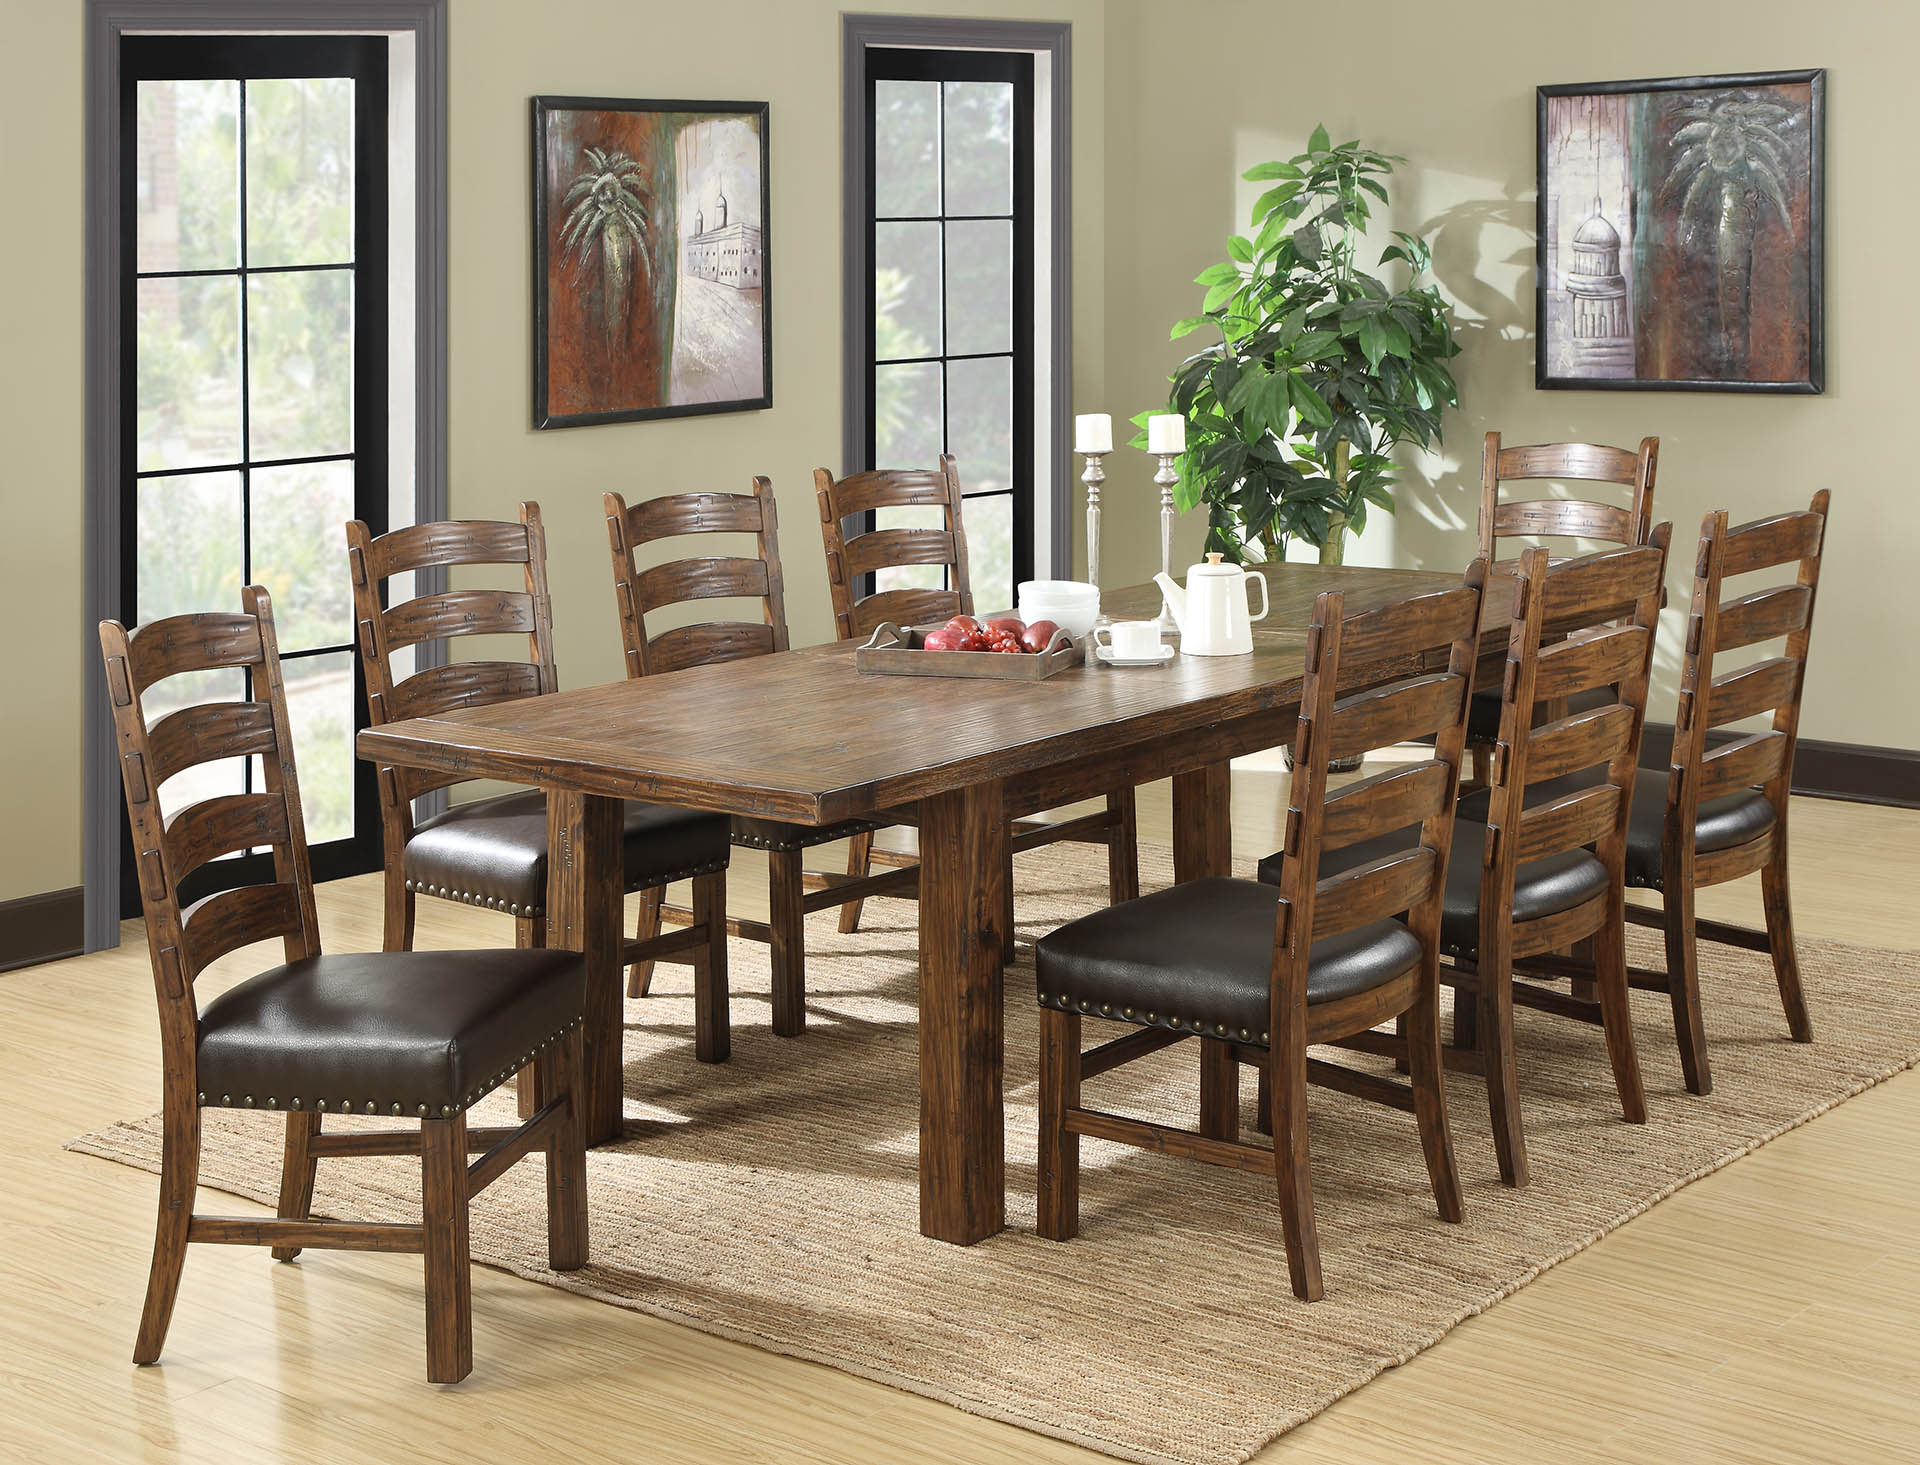 Dining Rooms Home Express Furniture We Are Your Trusted Choice For Affordable American Made Furniture As The Largest Furniture Outlet In Reno Nevada